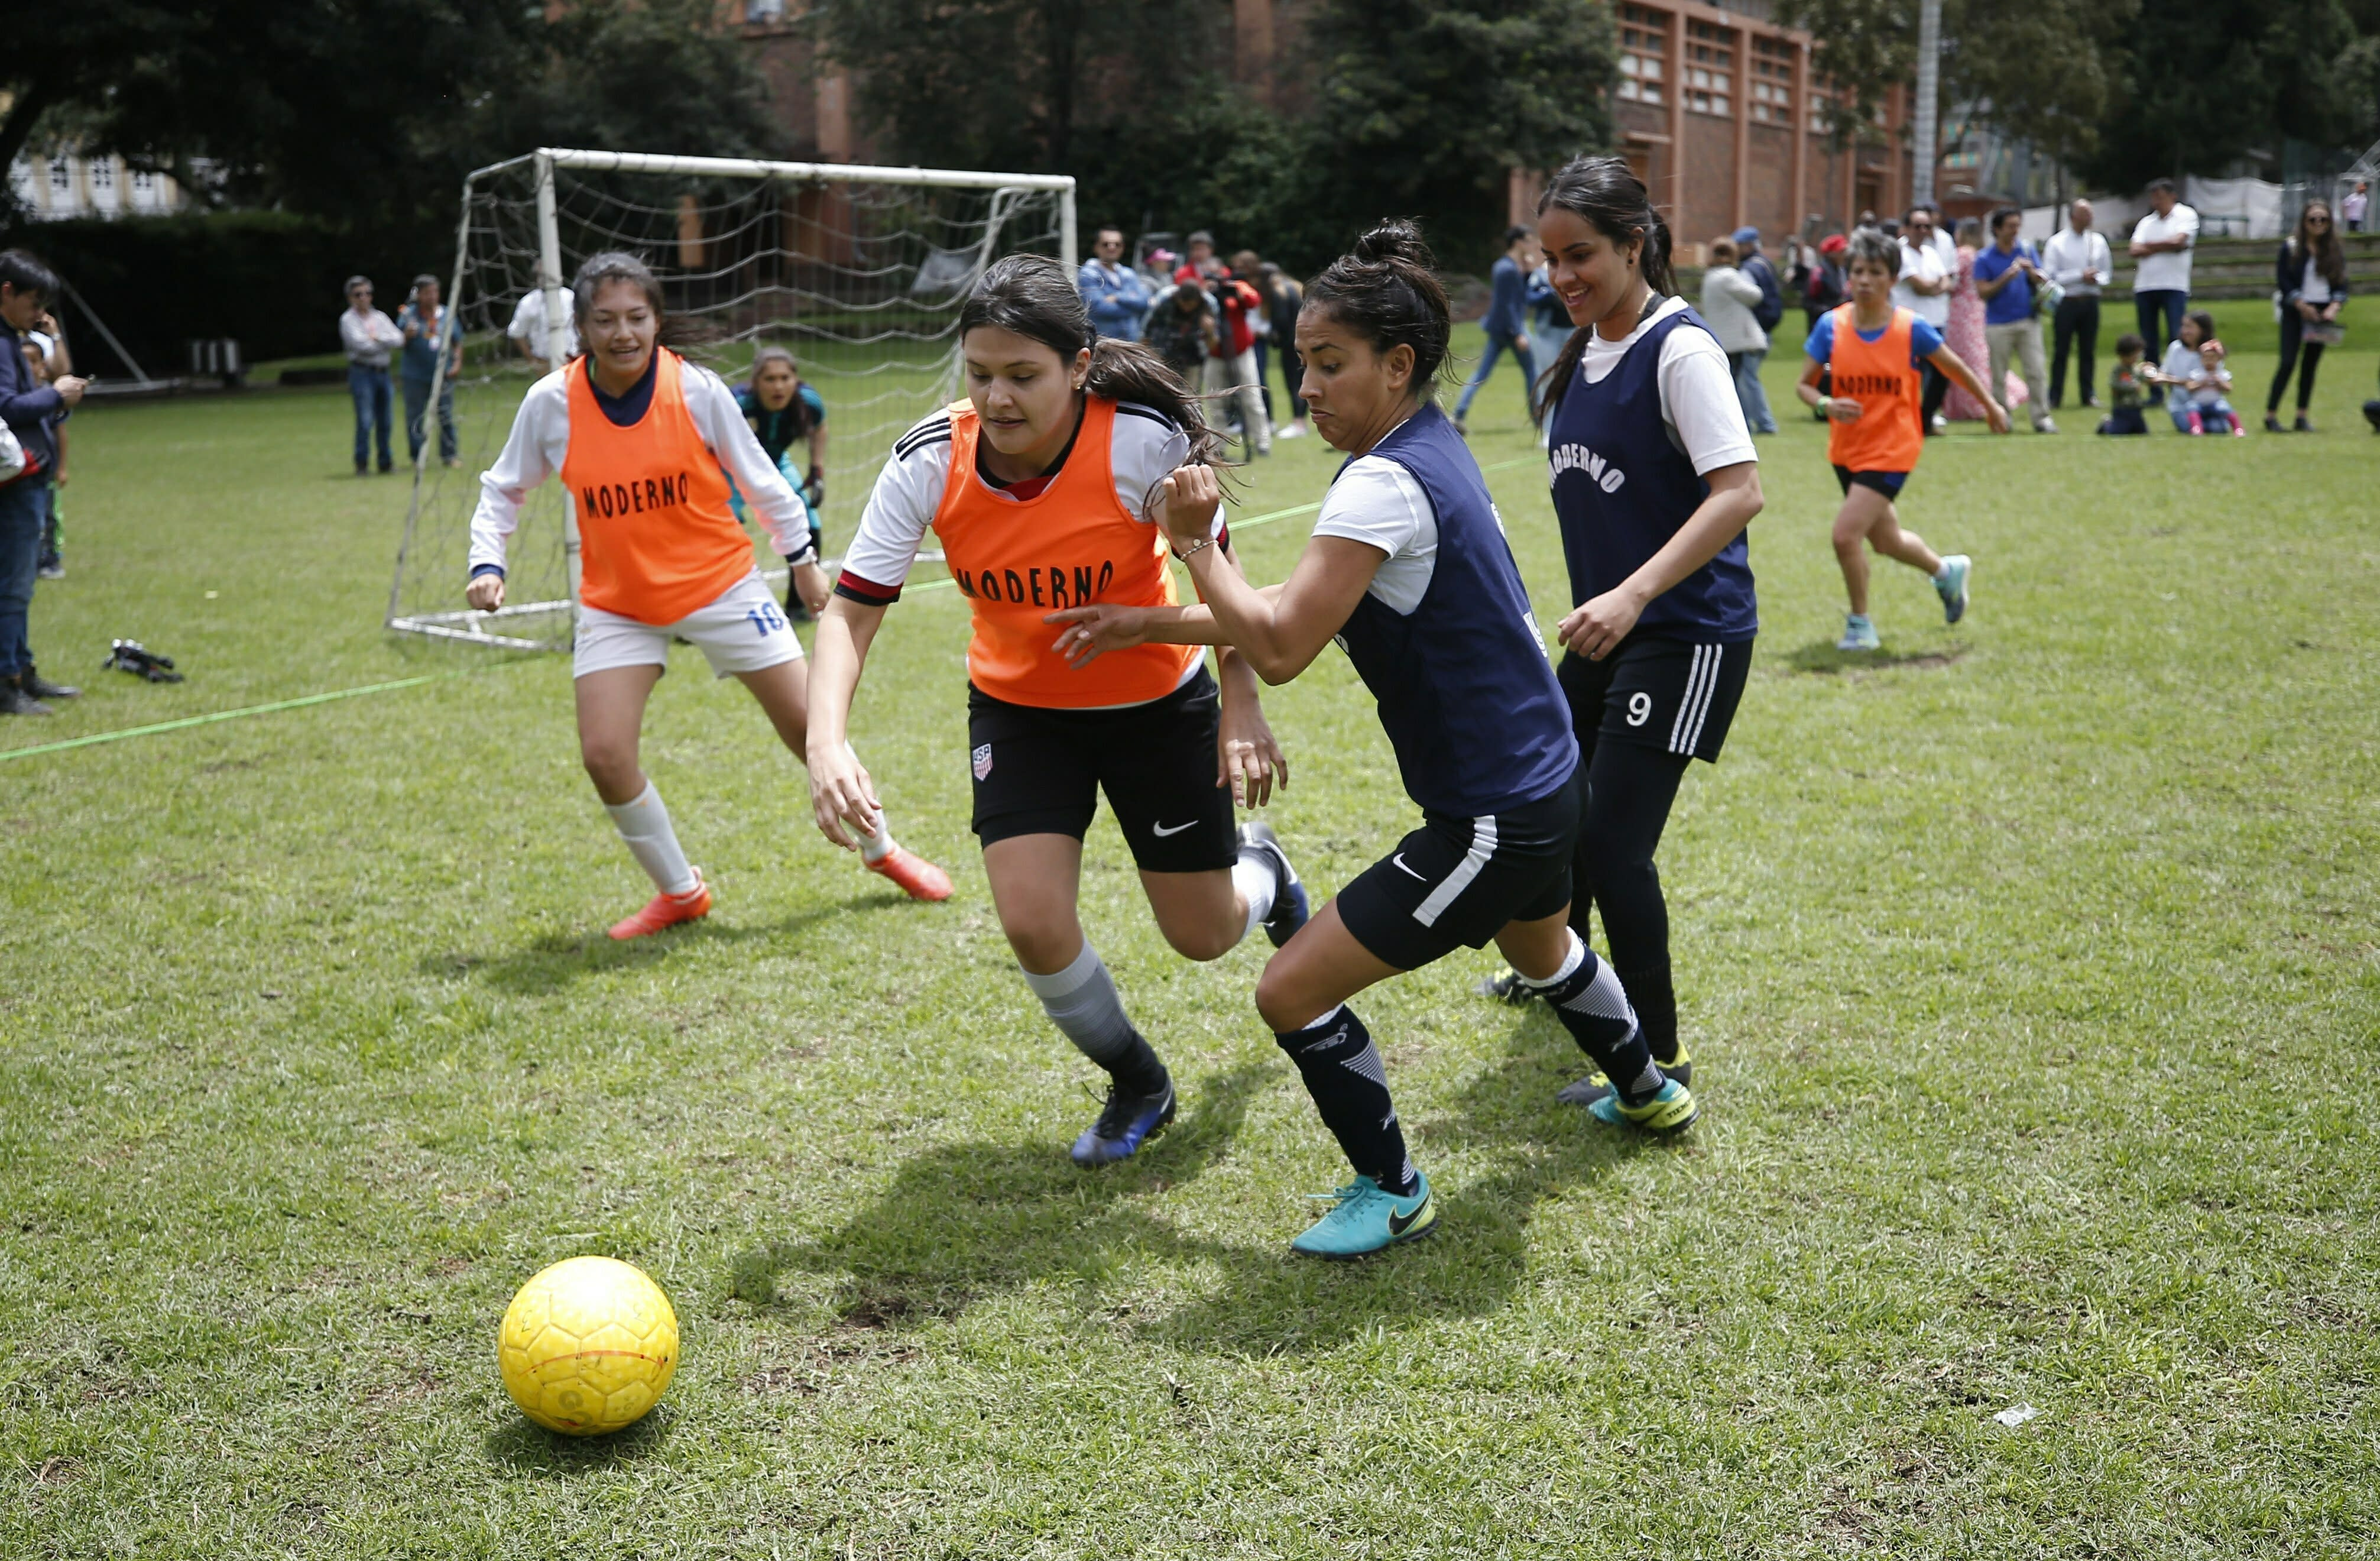 8d0c8124656 Colombia s female soccer players fight for level field